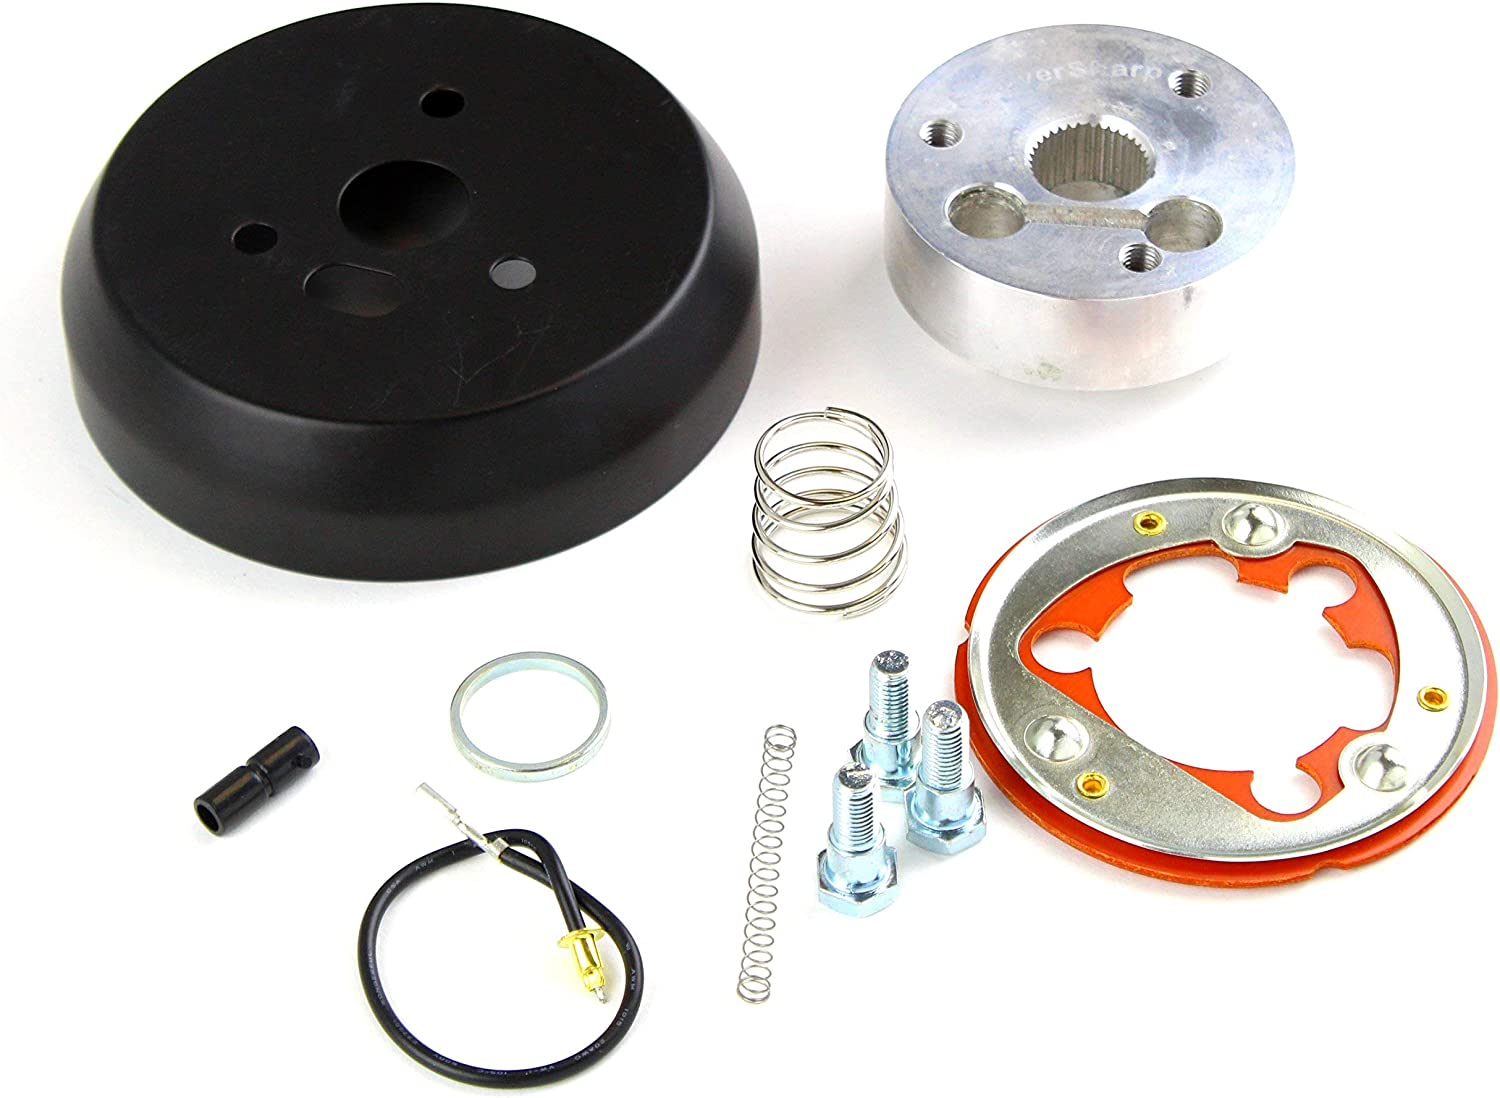 3-Hole Polished Hub Adapter Installation Kit For Aftermarket Steering Wheels